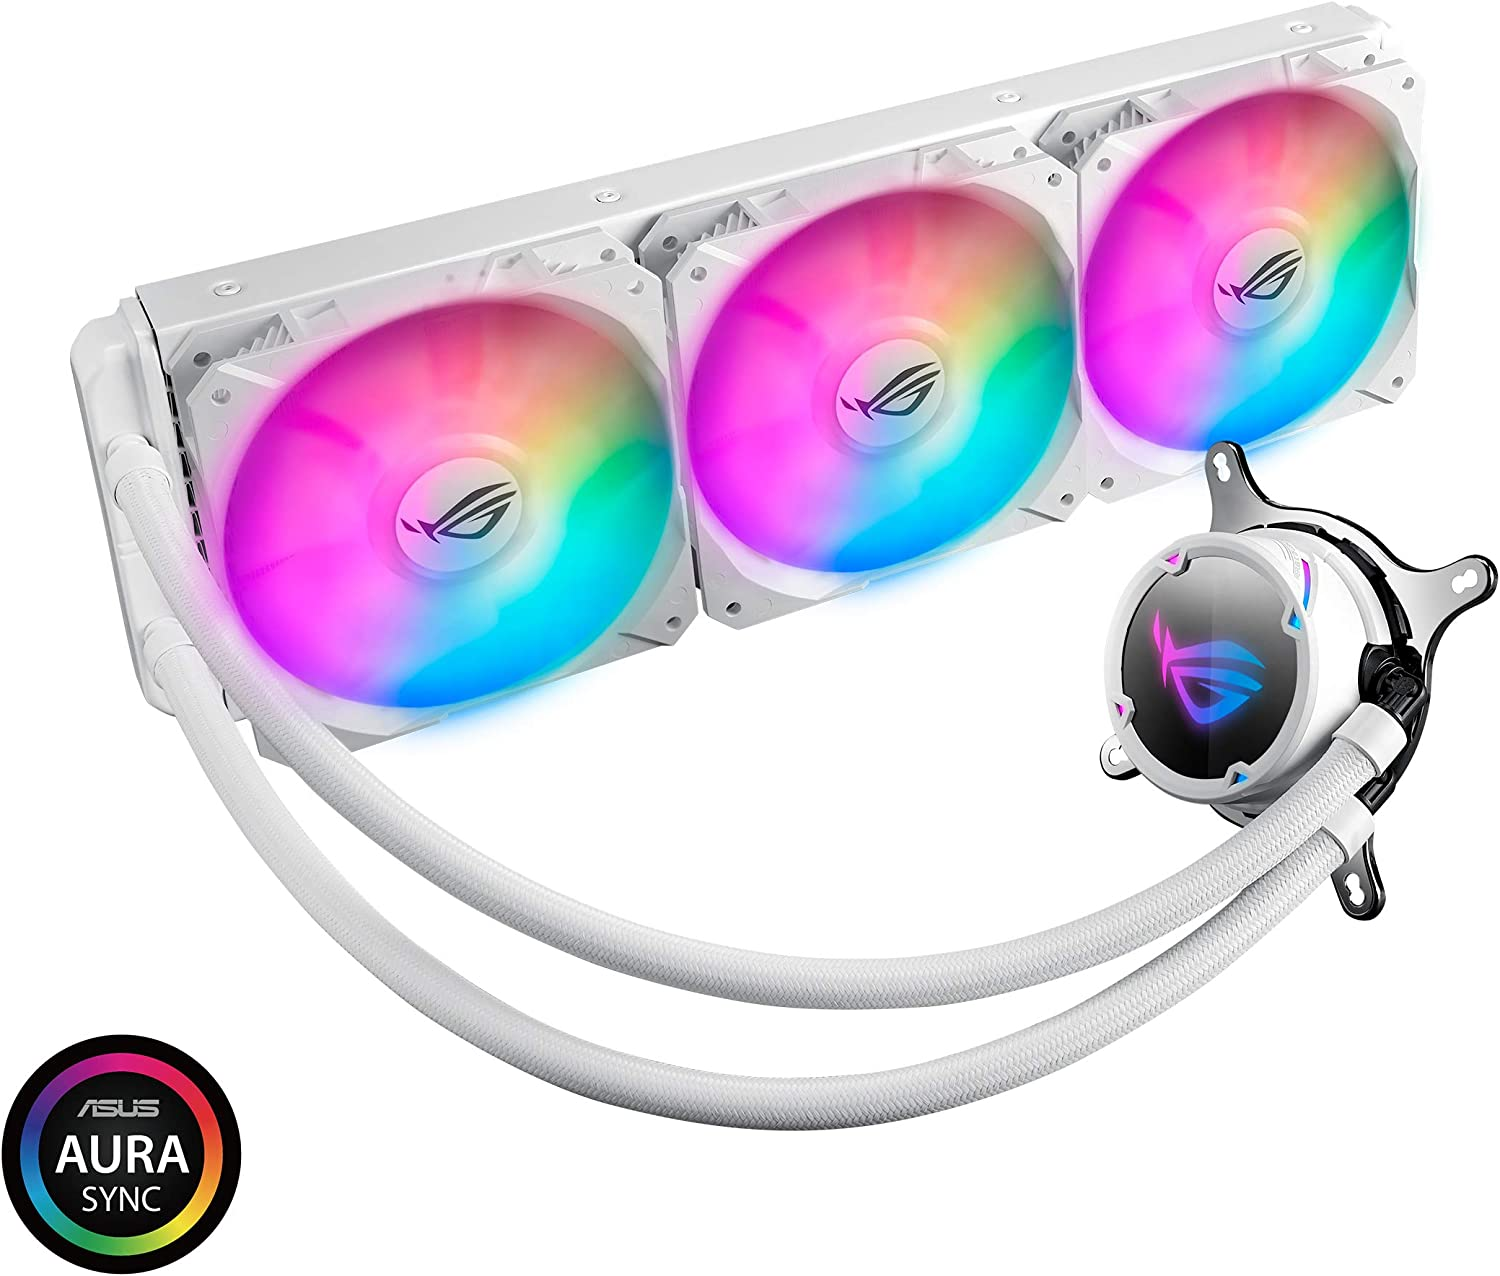 ASUS ROG Strix LC 360 RGB White Edition All-in-one Liquid CPU Cooler with Aura Sync RGB, and Triple ROG 120mm addressable RGB Radiator Fans